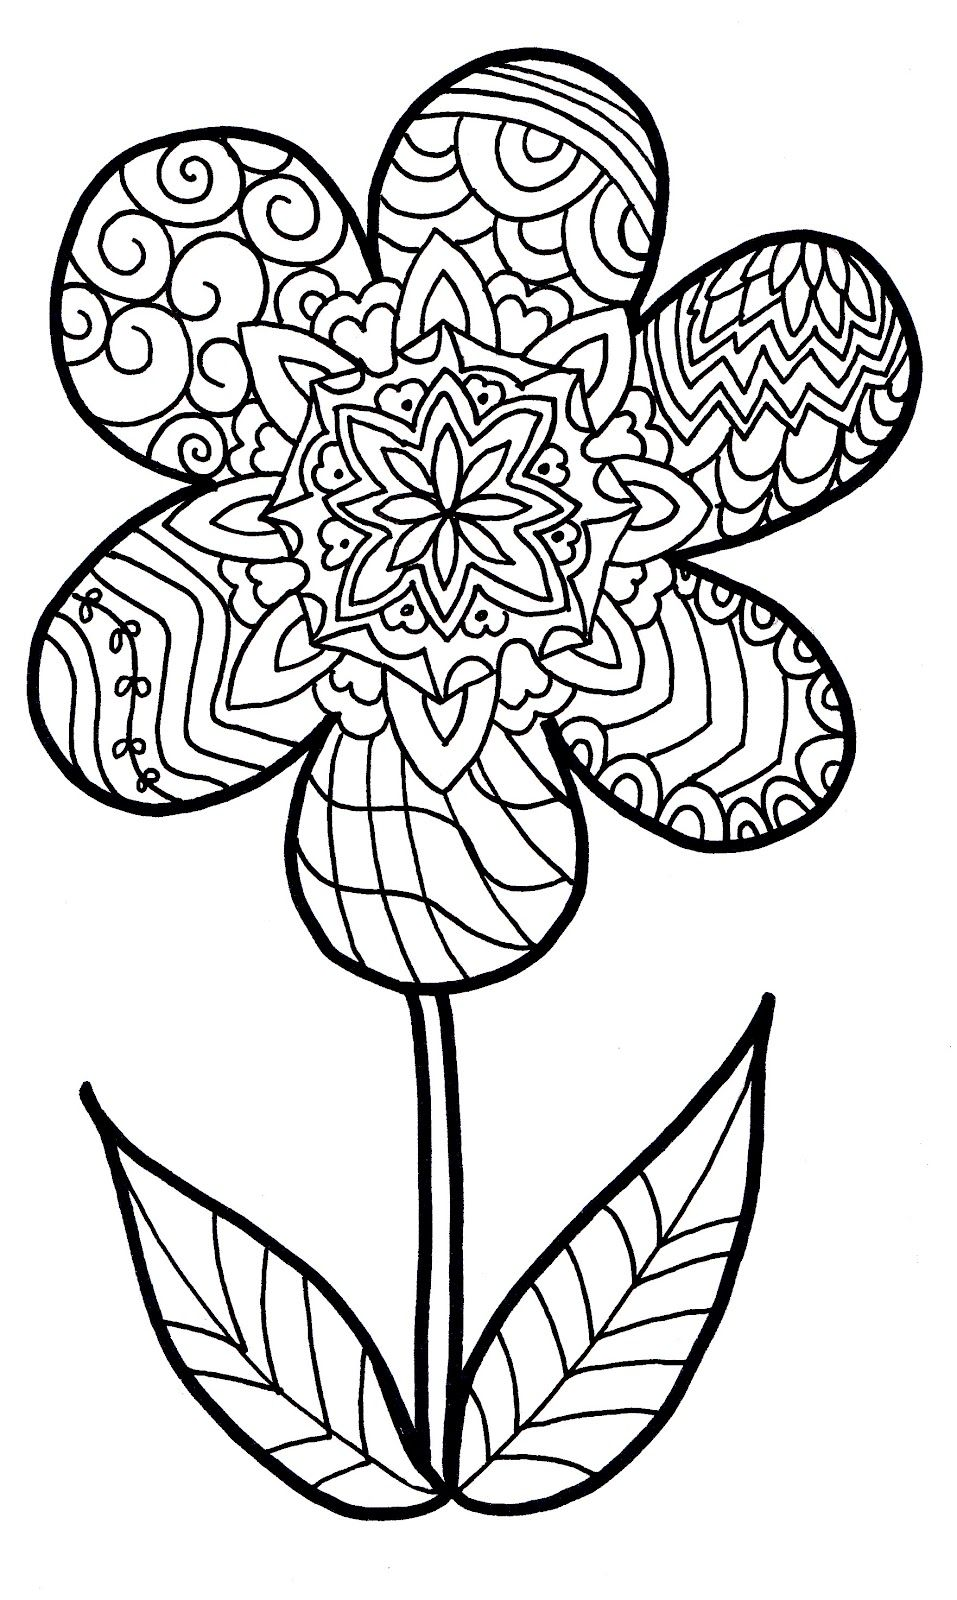 Frühling Ausmalbilder : Flower Zentangle Colouring Page Jpg 957 1600 Coloring Pages For